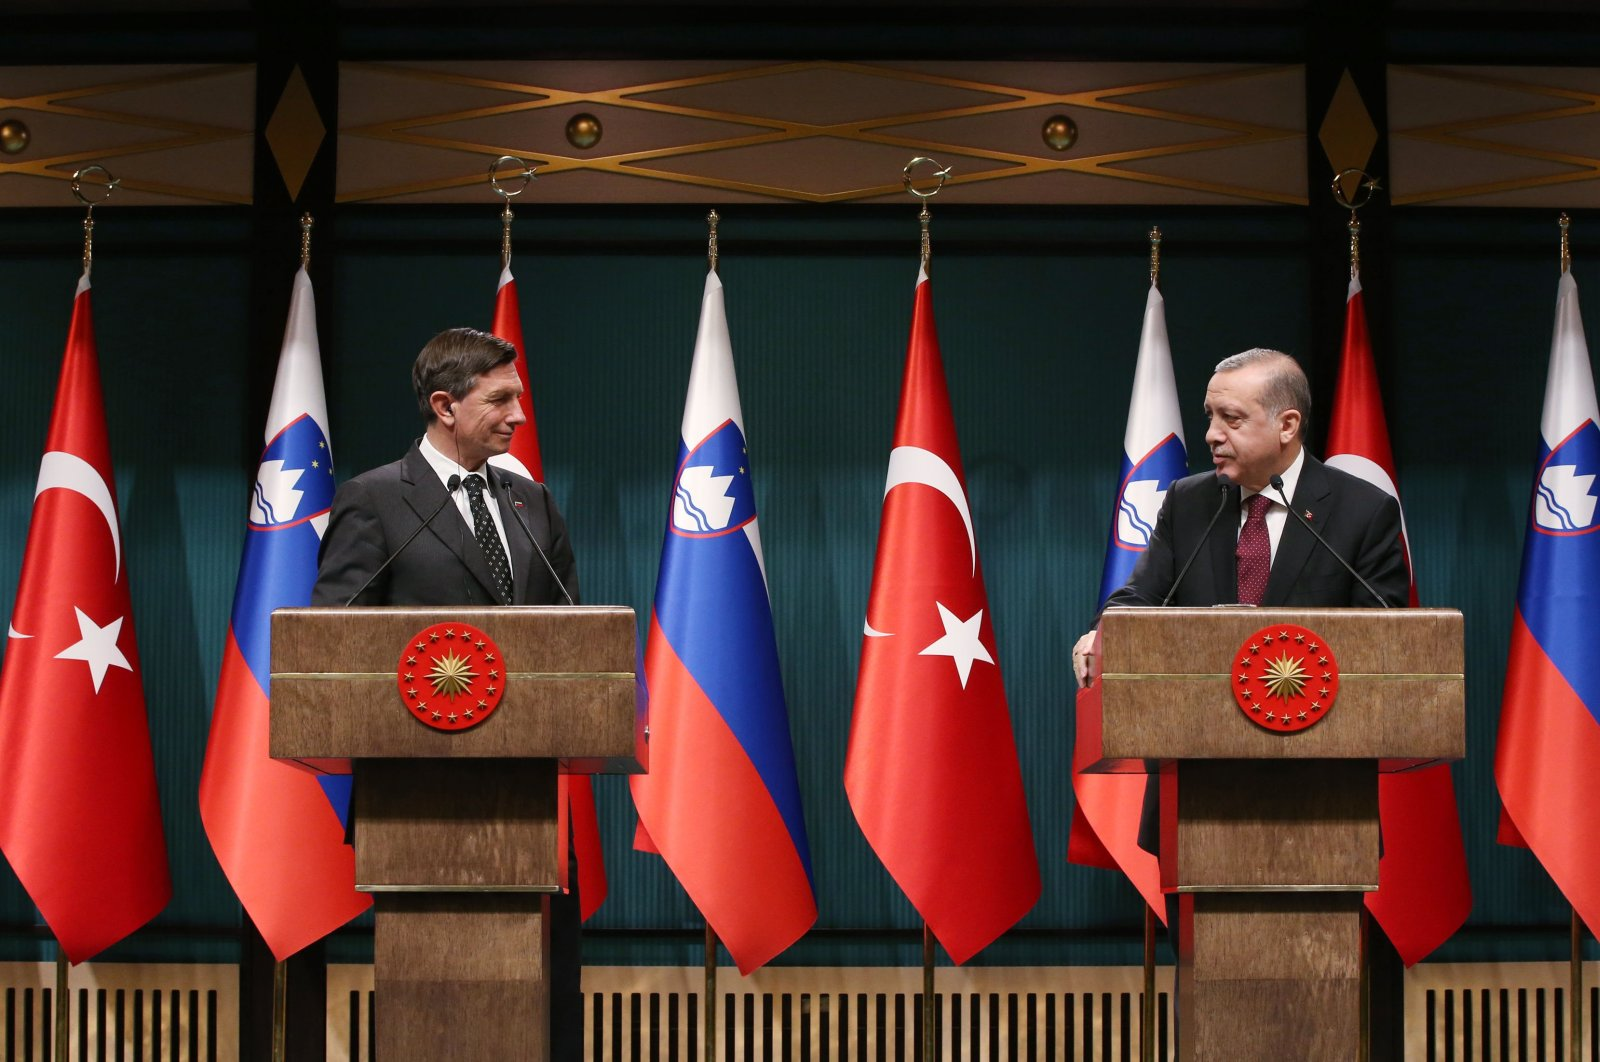 President Recep Tayyip Erdoğan and Slovenian President Borut Pahor speak at a news conference, Ankara, Dec. 15, 2016. (Sabah File Photo)